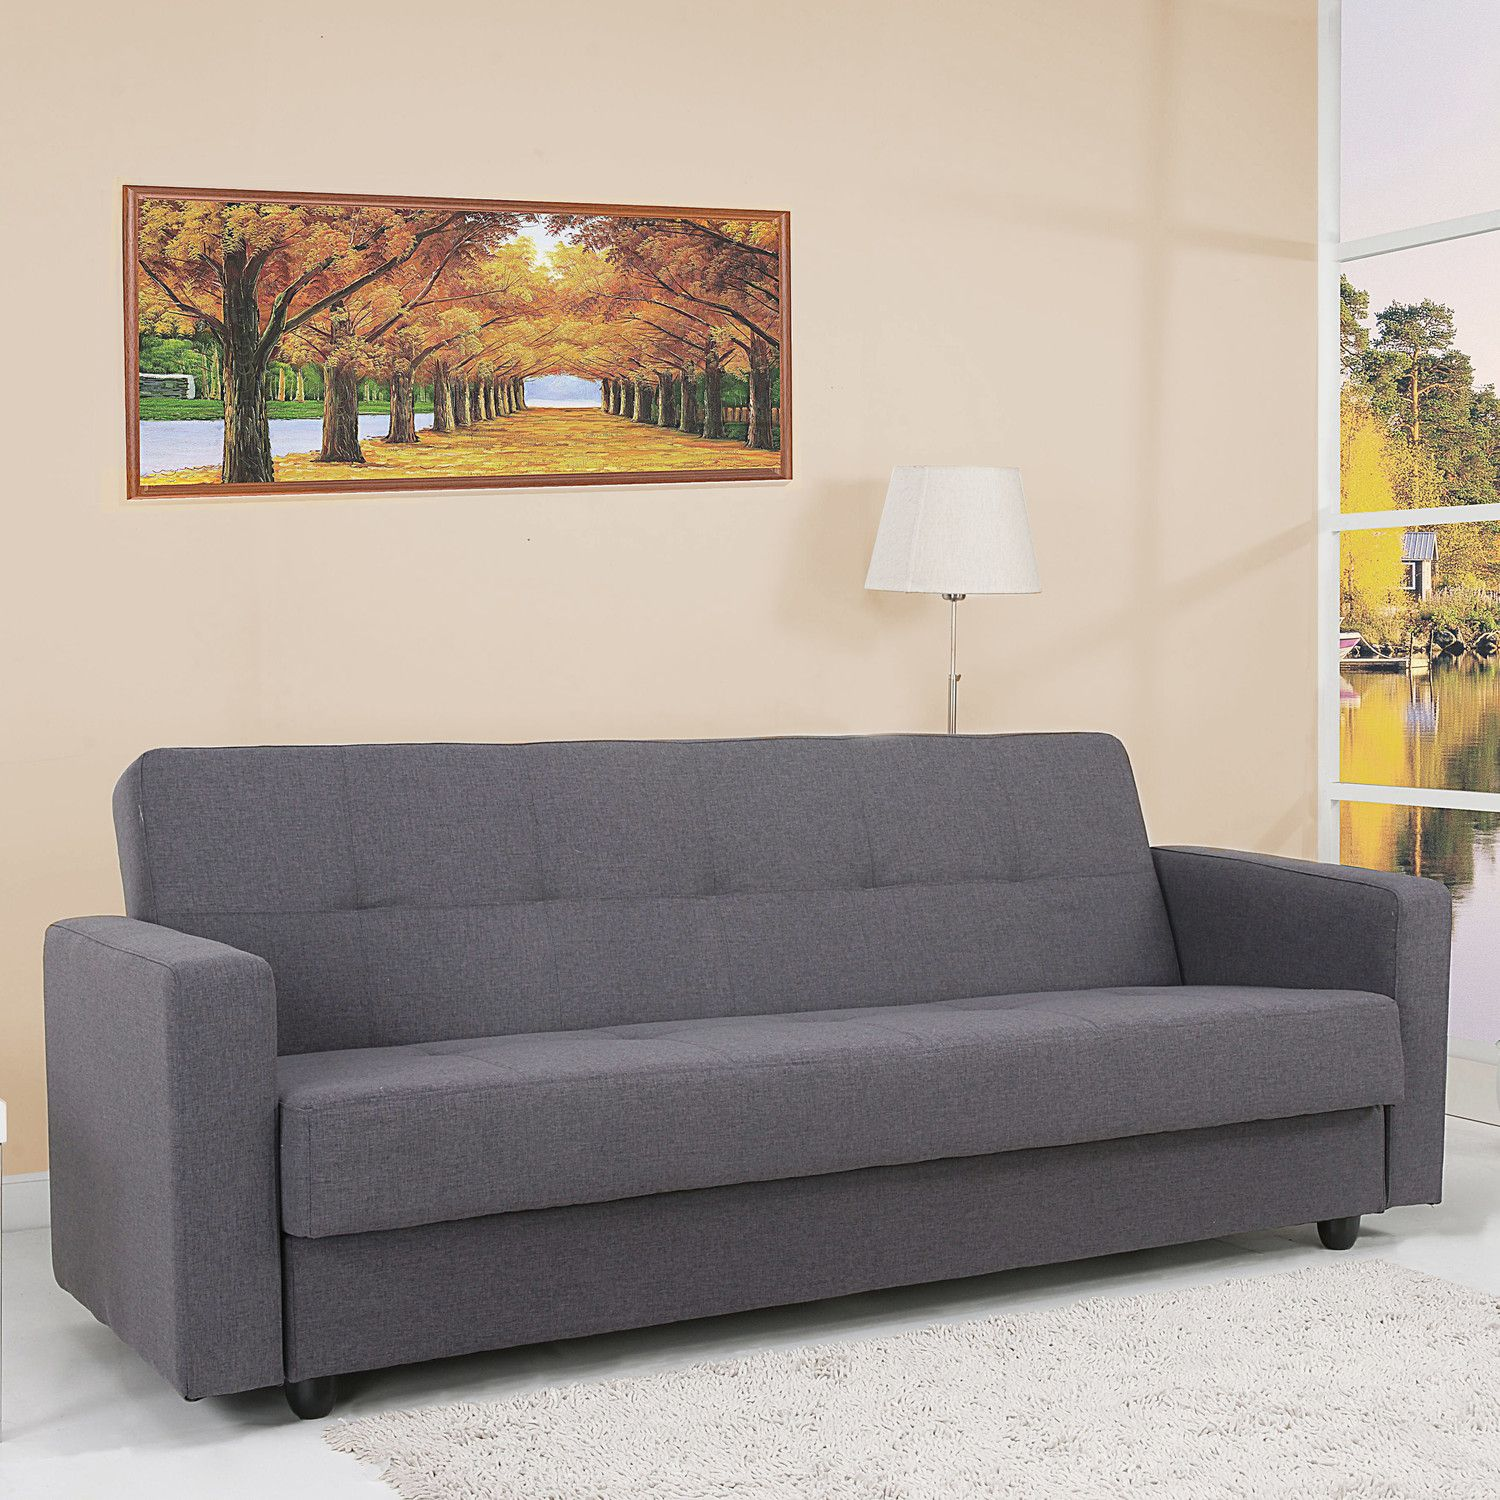 Clic Clac Sofa Bed With Storage Chaise Longue Cama Baratos 3 Seater Uk Bruin Blog